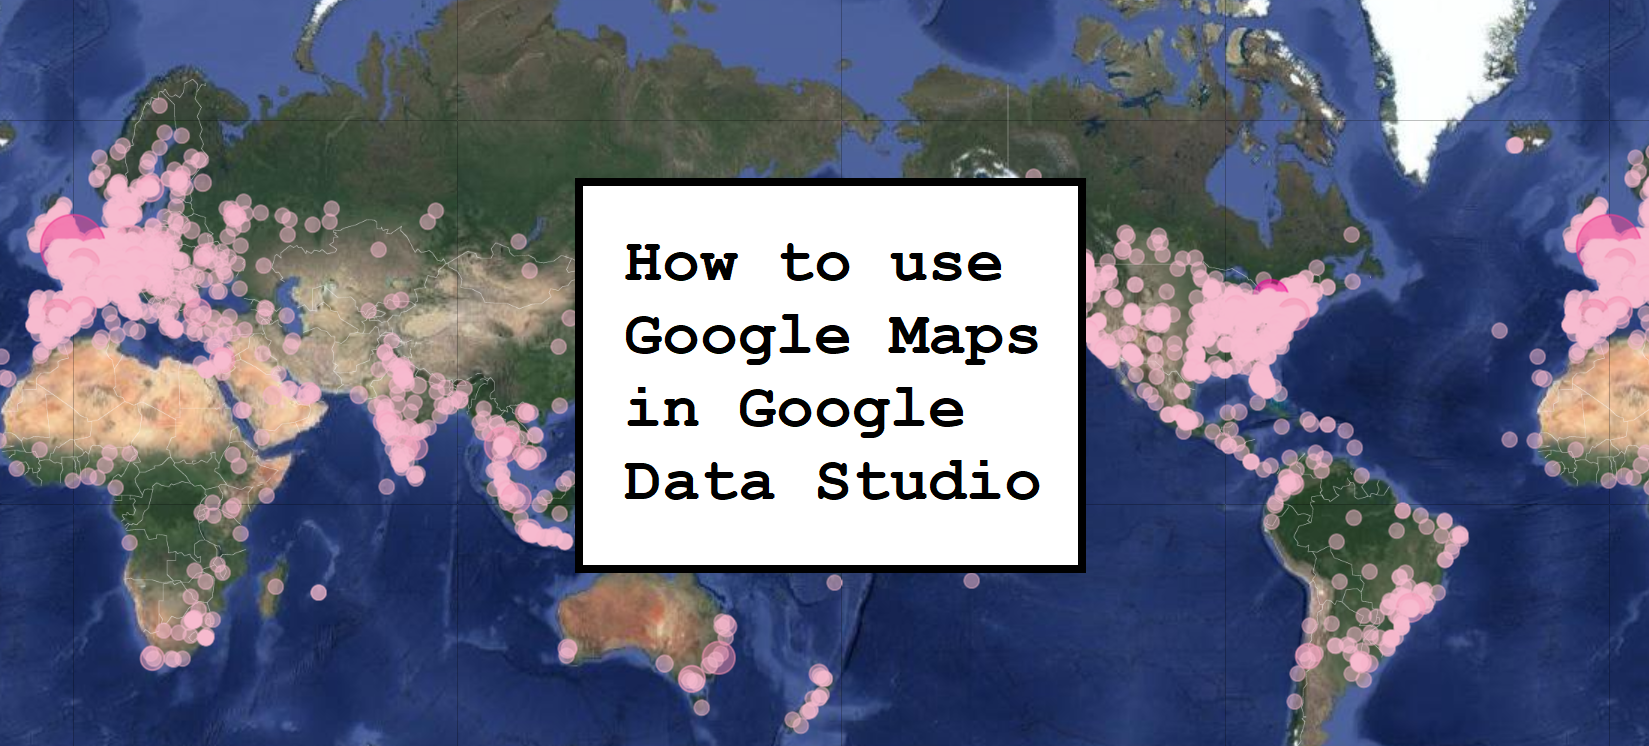 How to use Google Maps in Google Data Studio